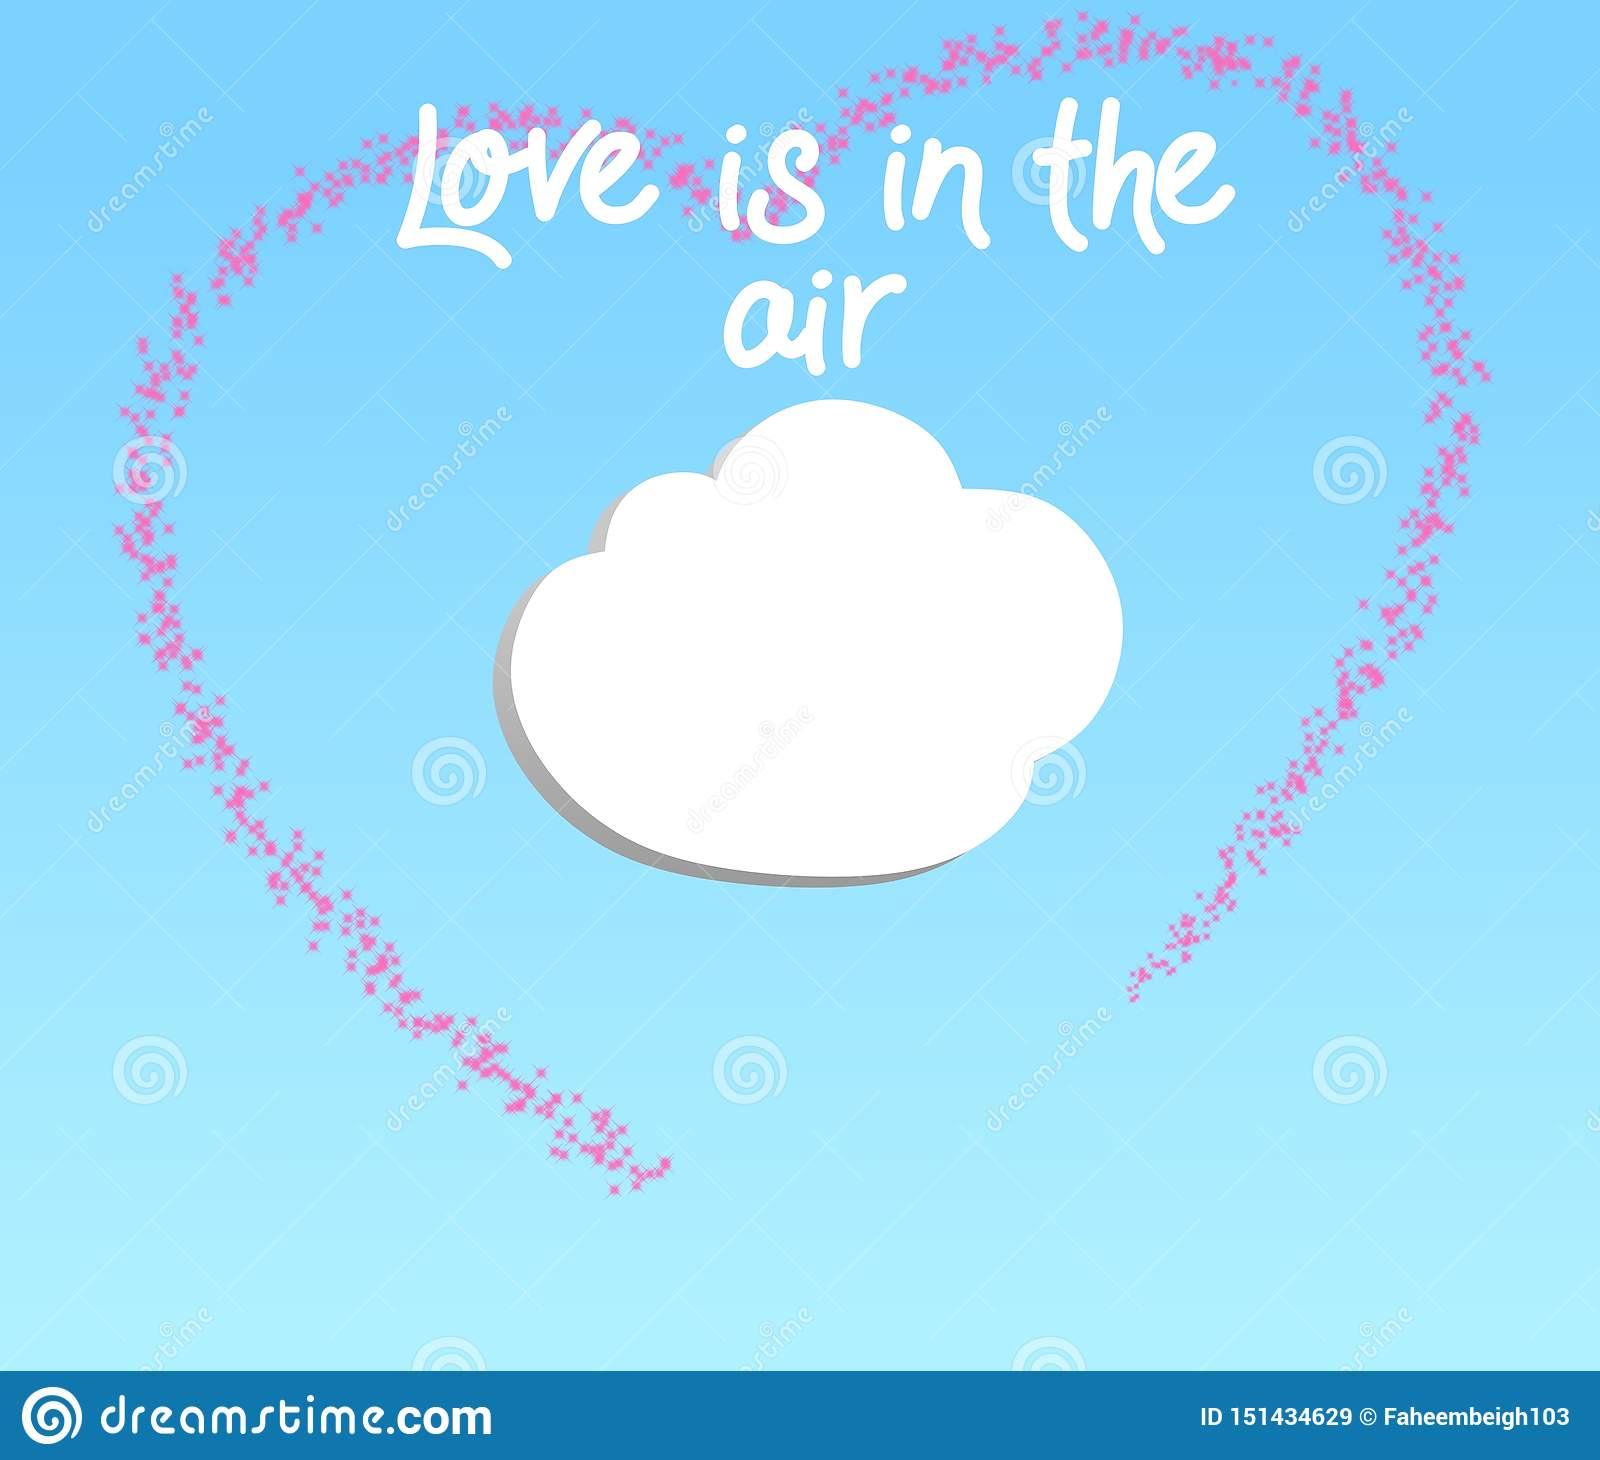 Creative illustration of Love is in the air on a gradient sky blue background.